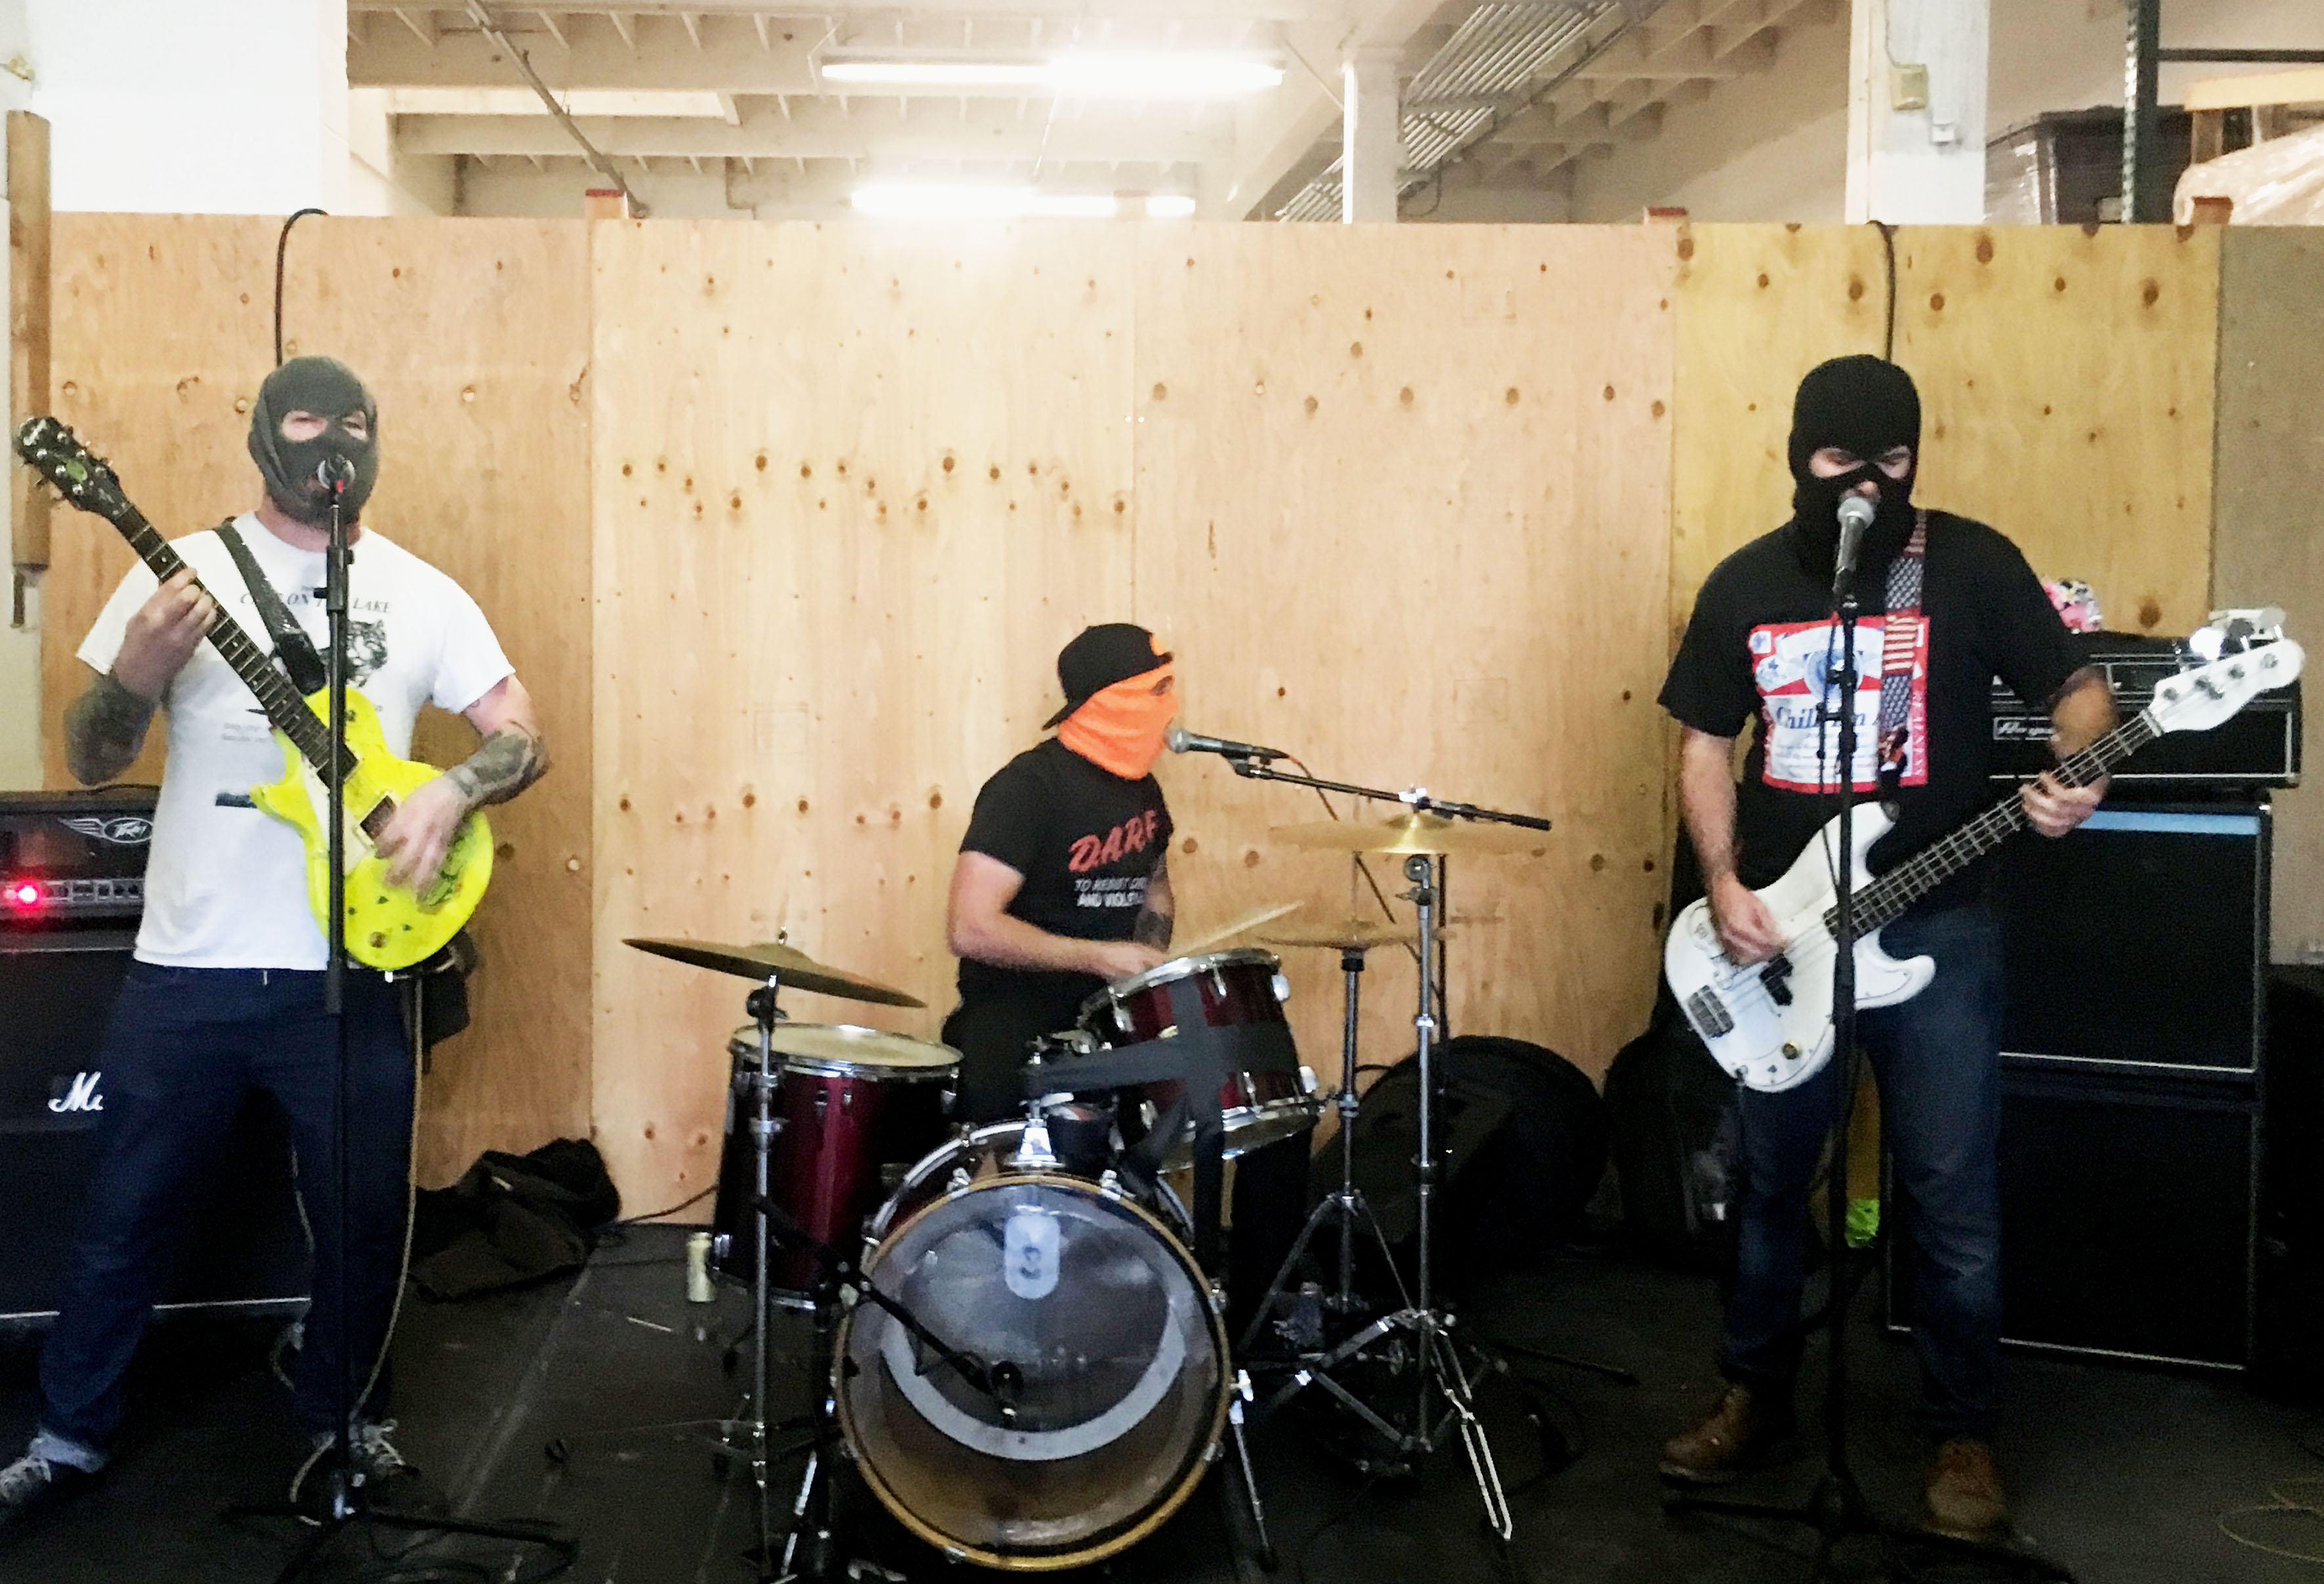 """The Band's name is """"Butt Problems"""" so naturally they get top billing in this article"""